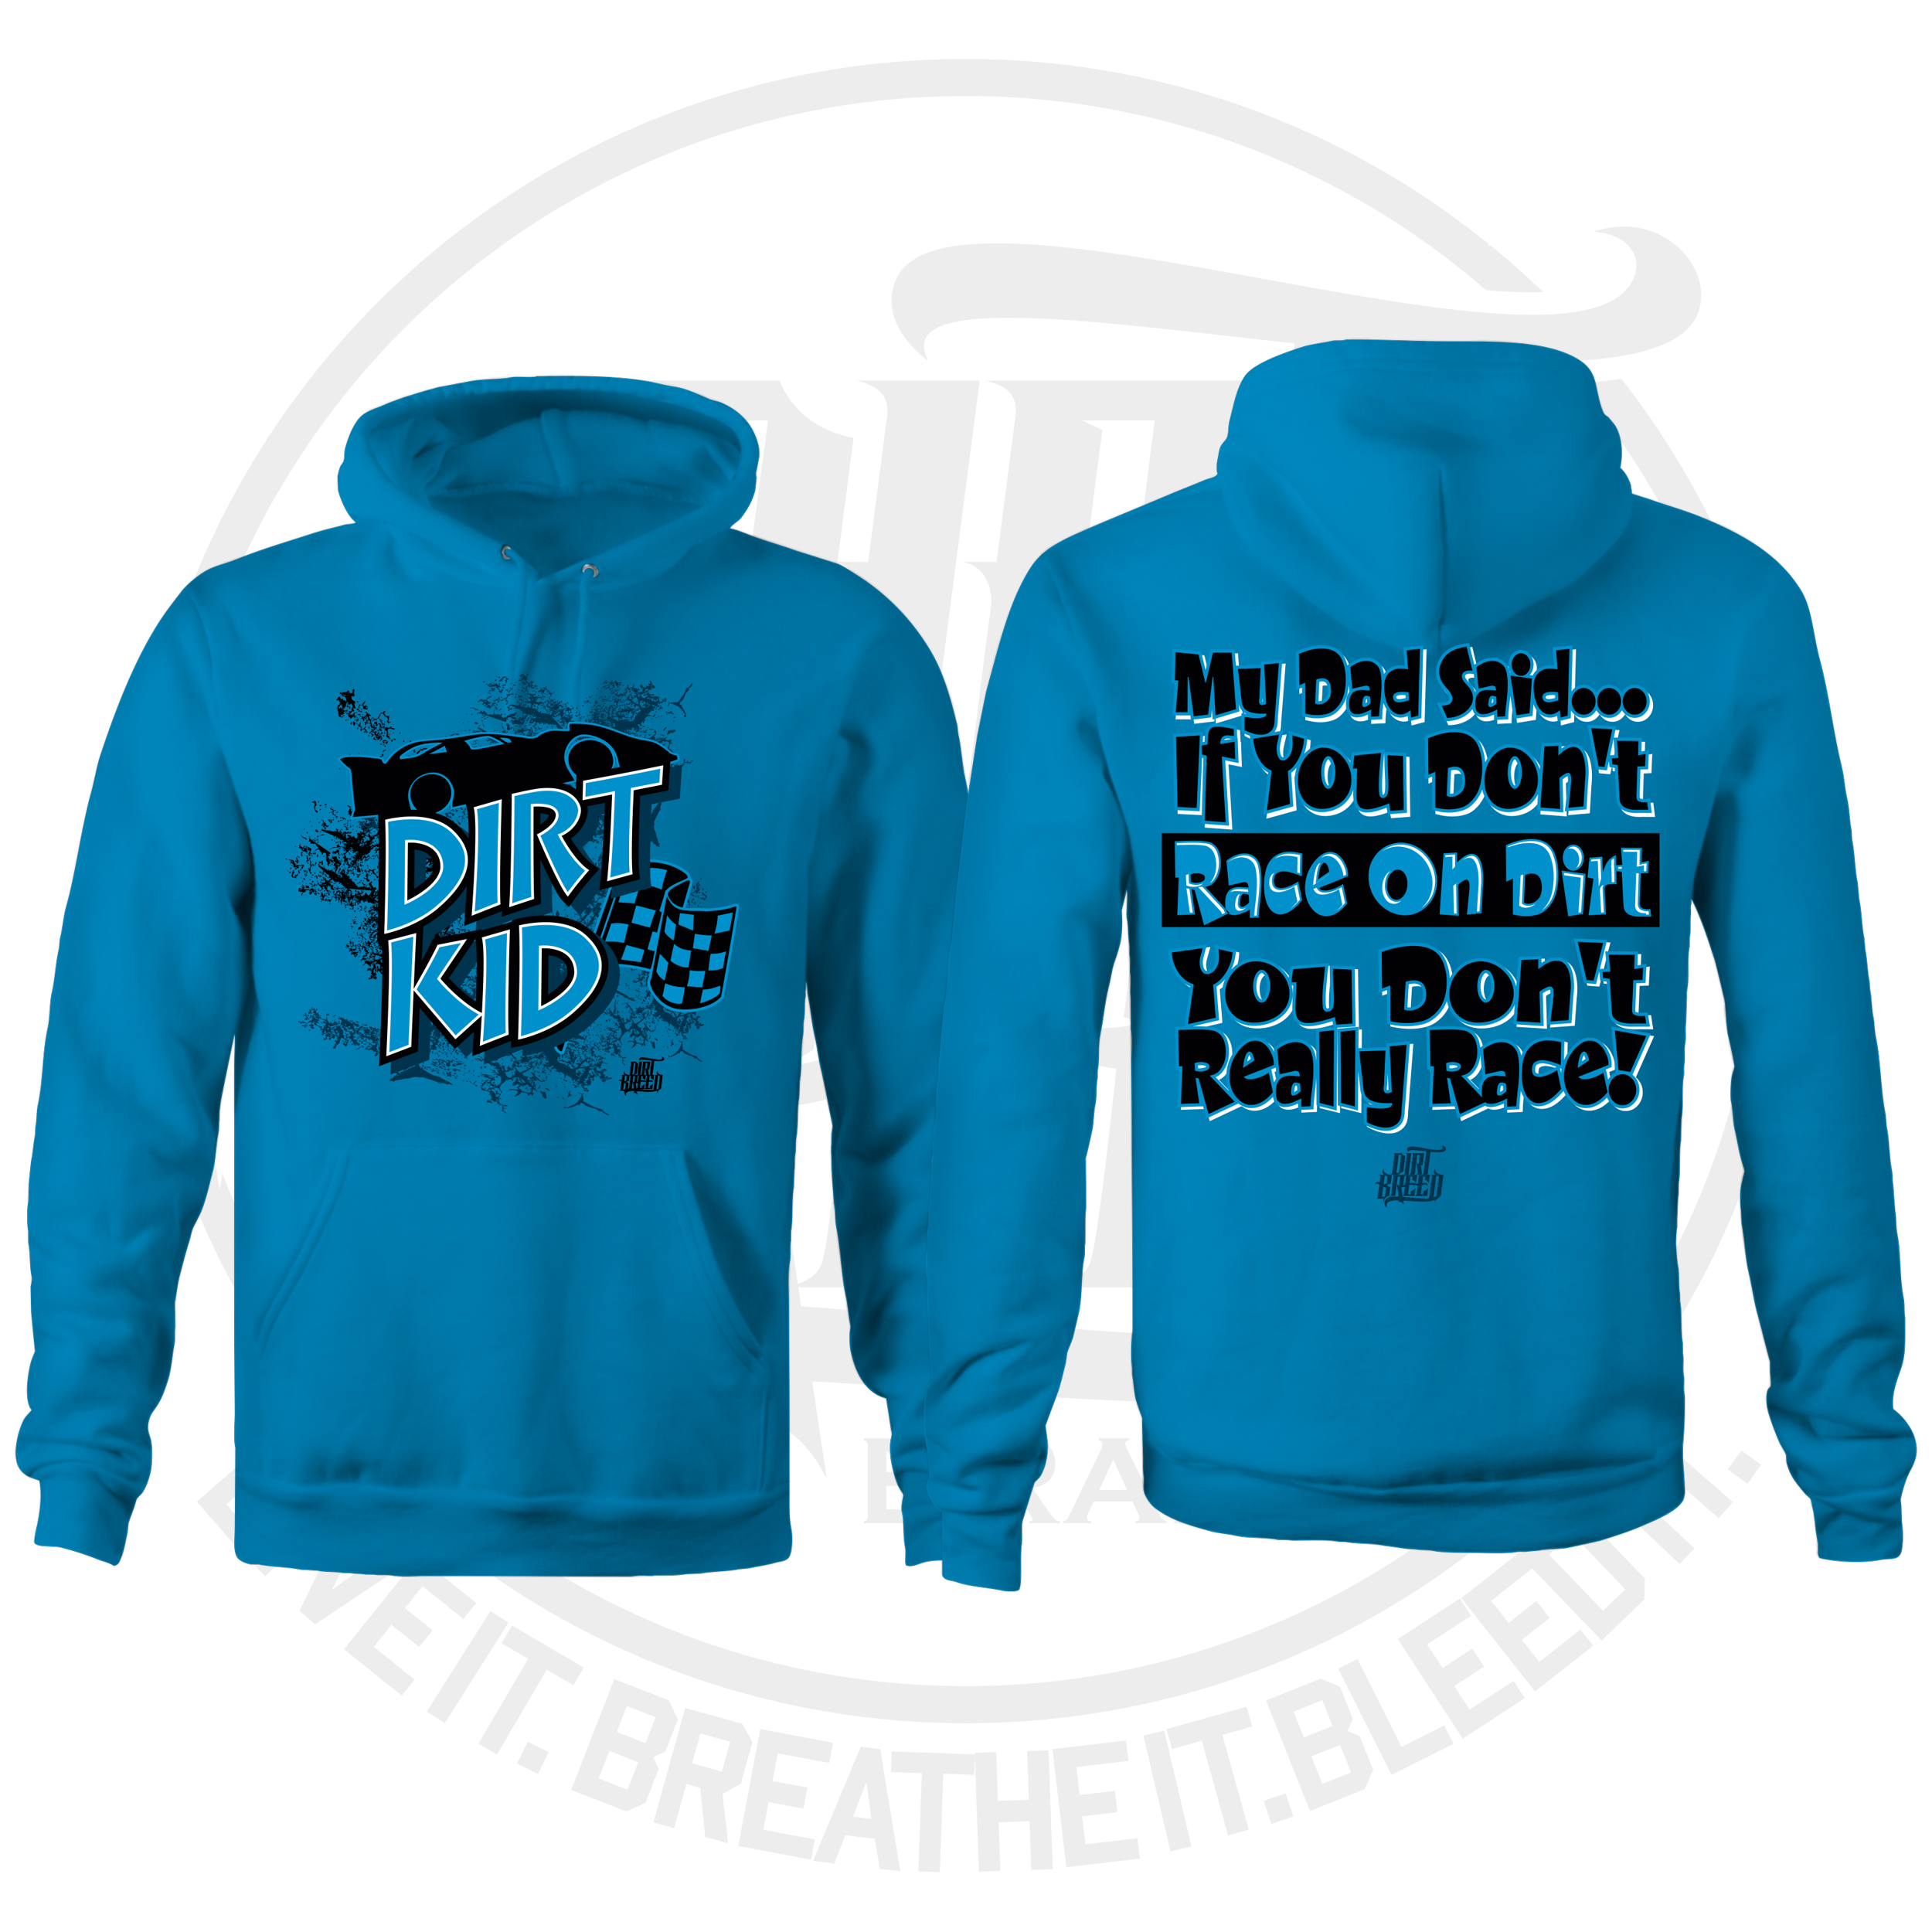 DirtKid Dirt Track Racing Kids Hooded Sweatshirt